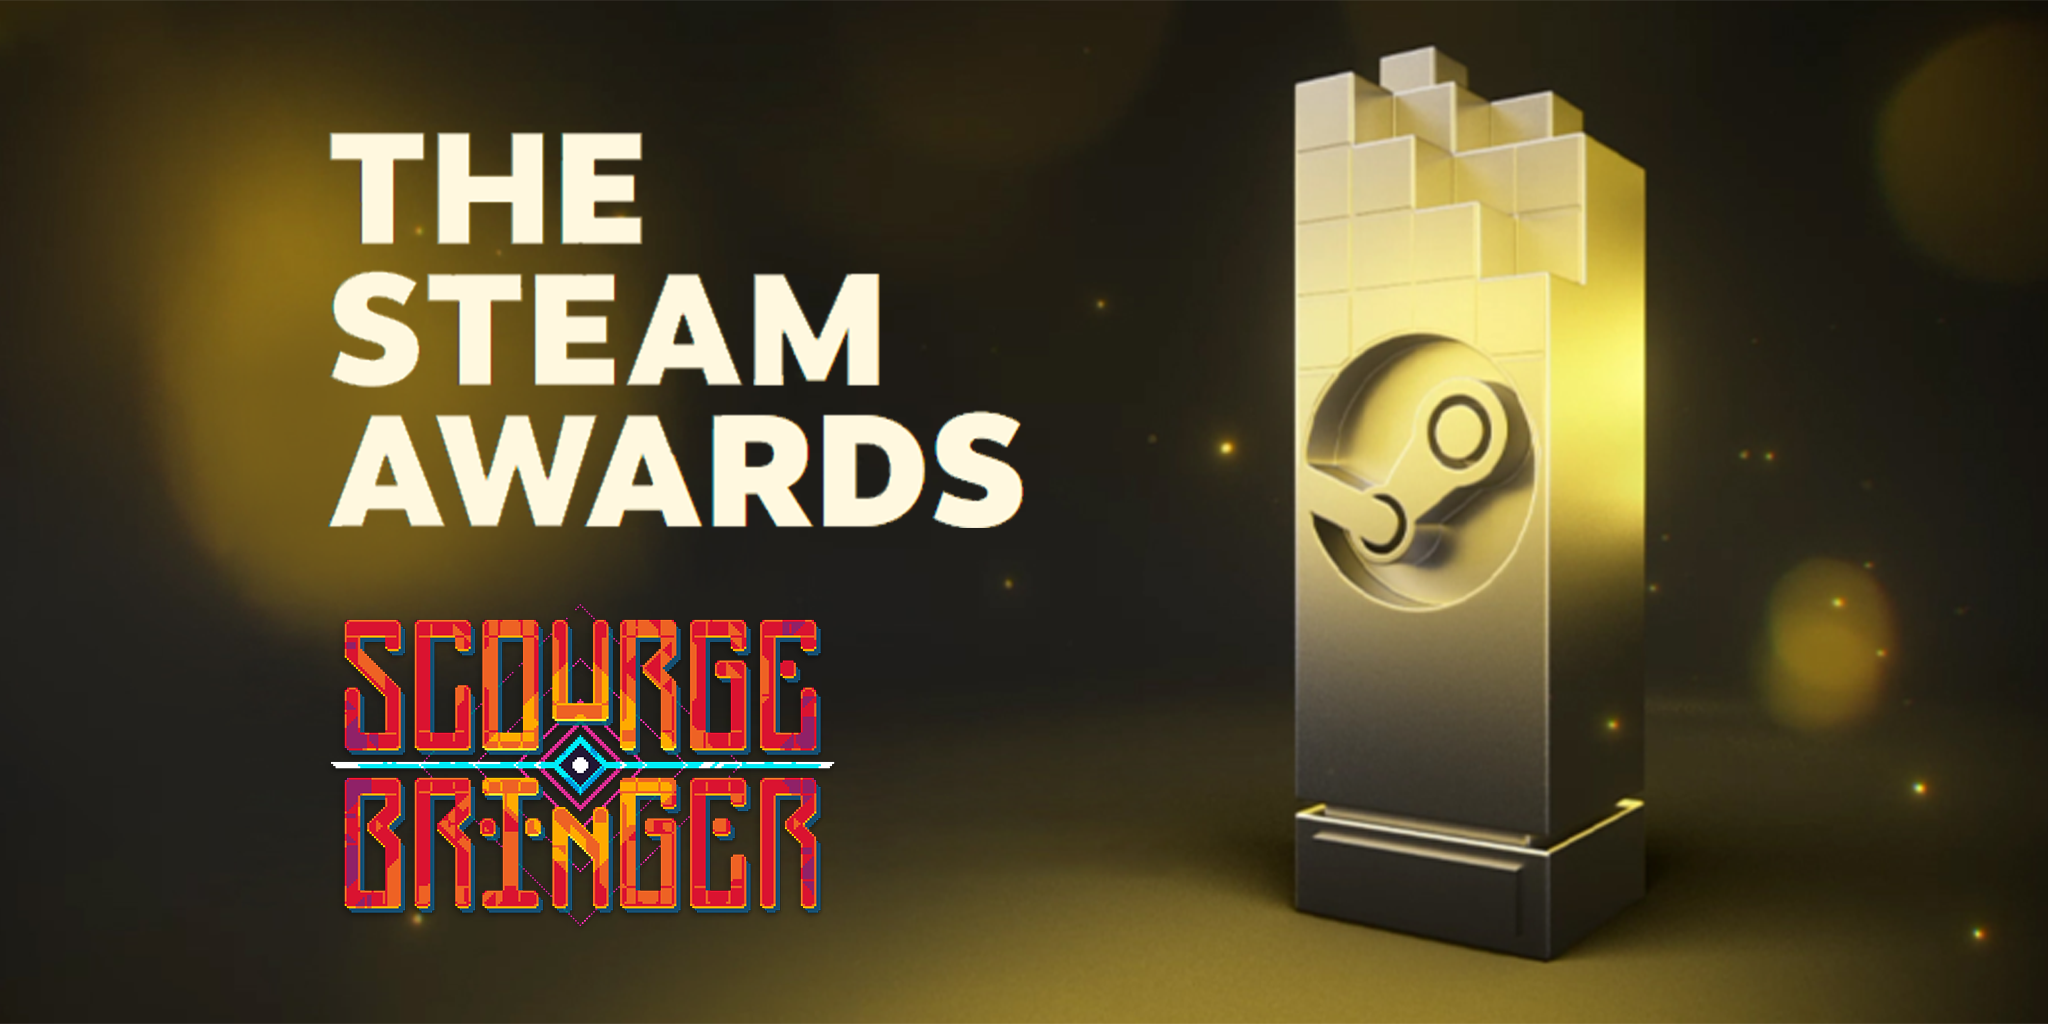 Scourge Format RS Steam Awards